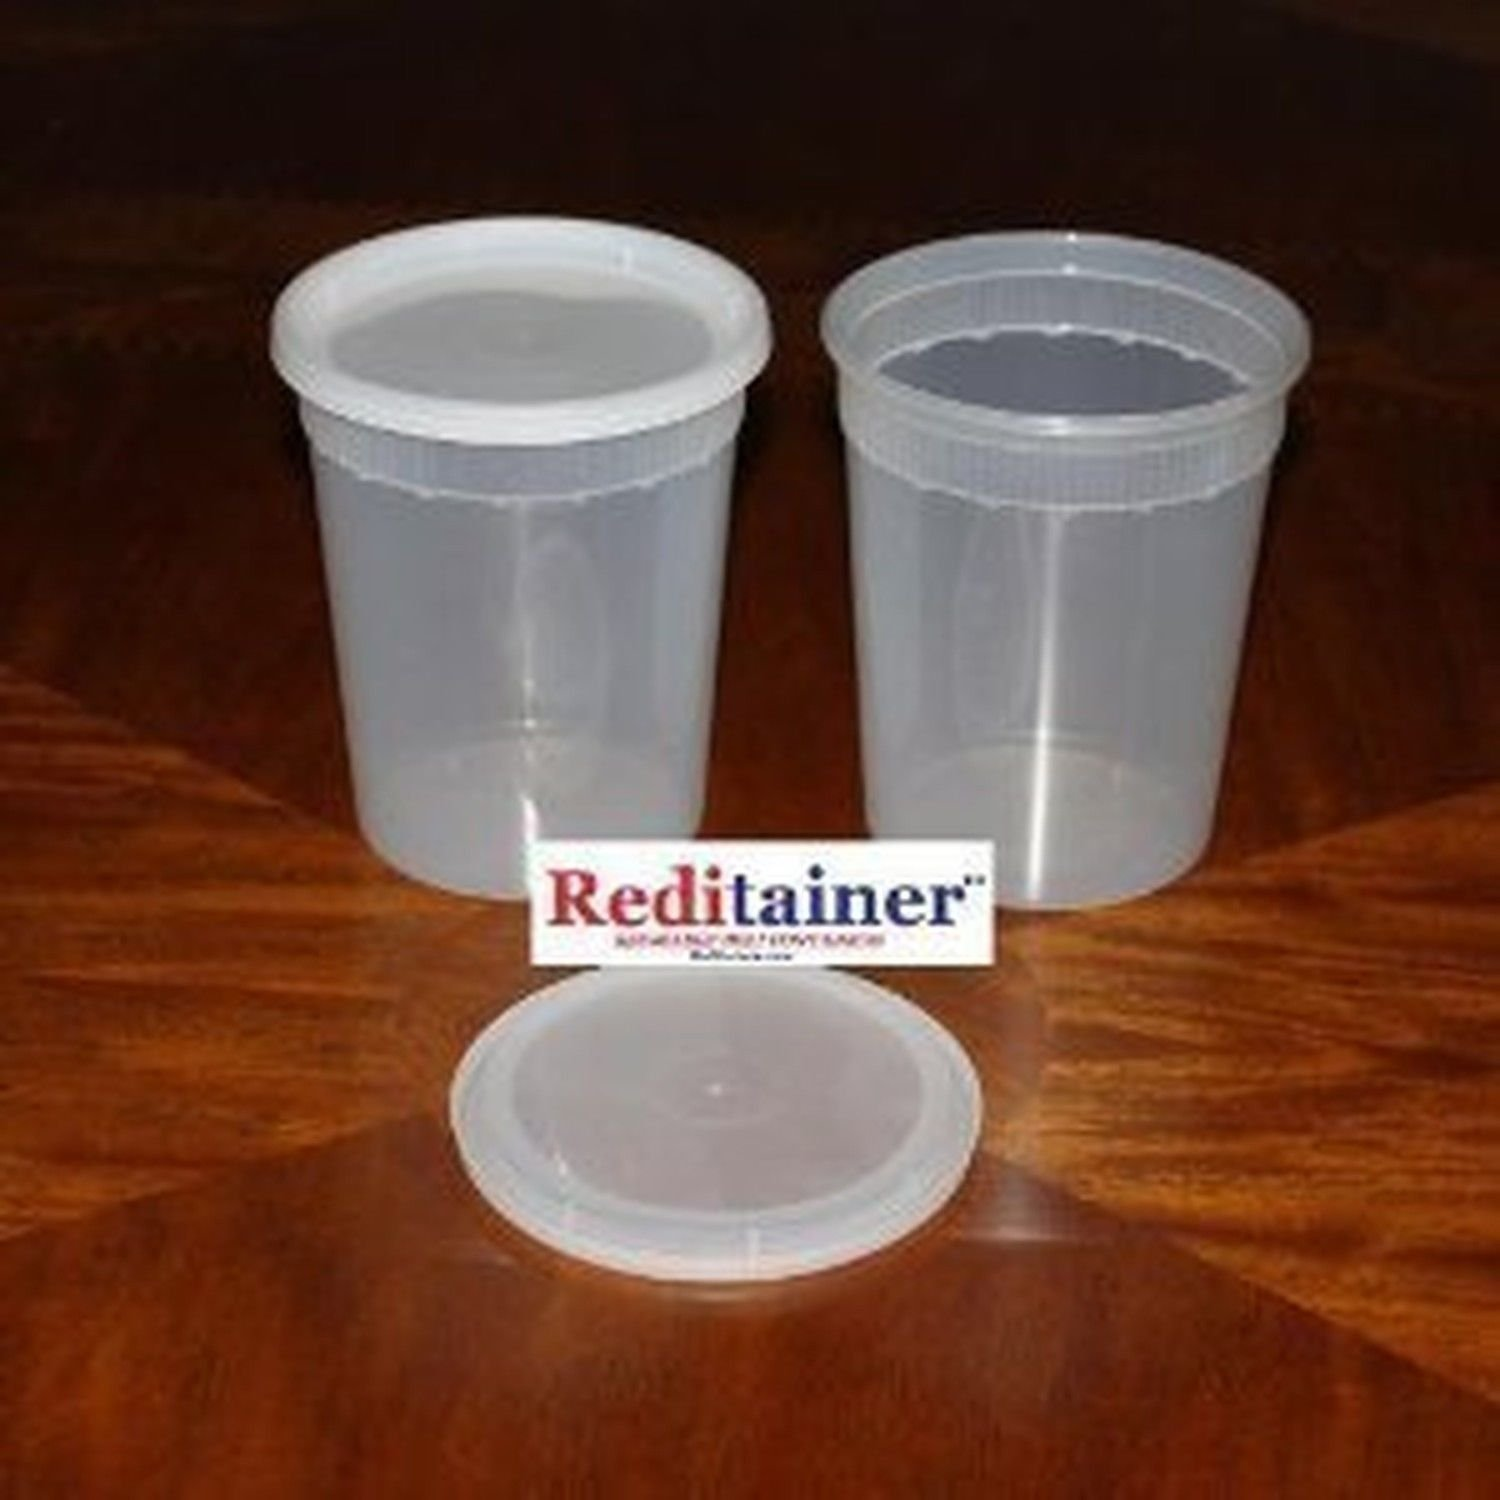 Reditainer Deli Food Storage Containers with Lid, 32-Ounce, 24-Pack by Reditainer